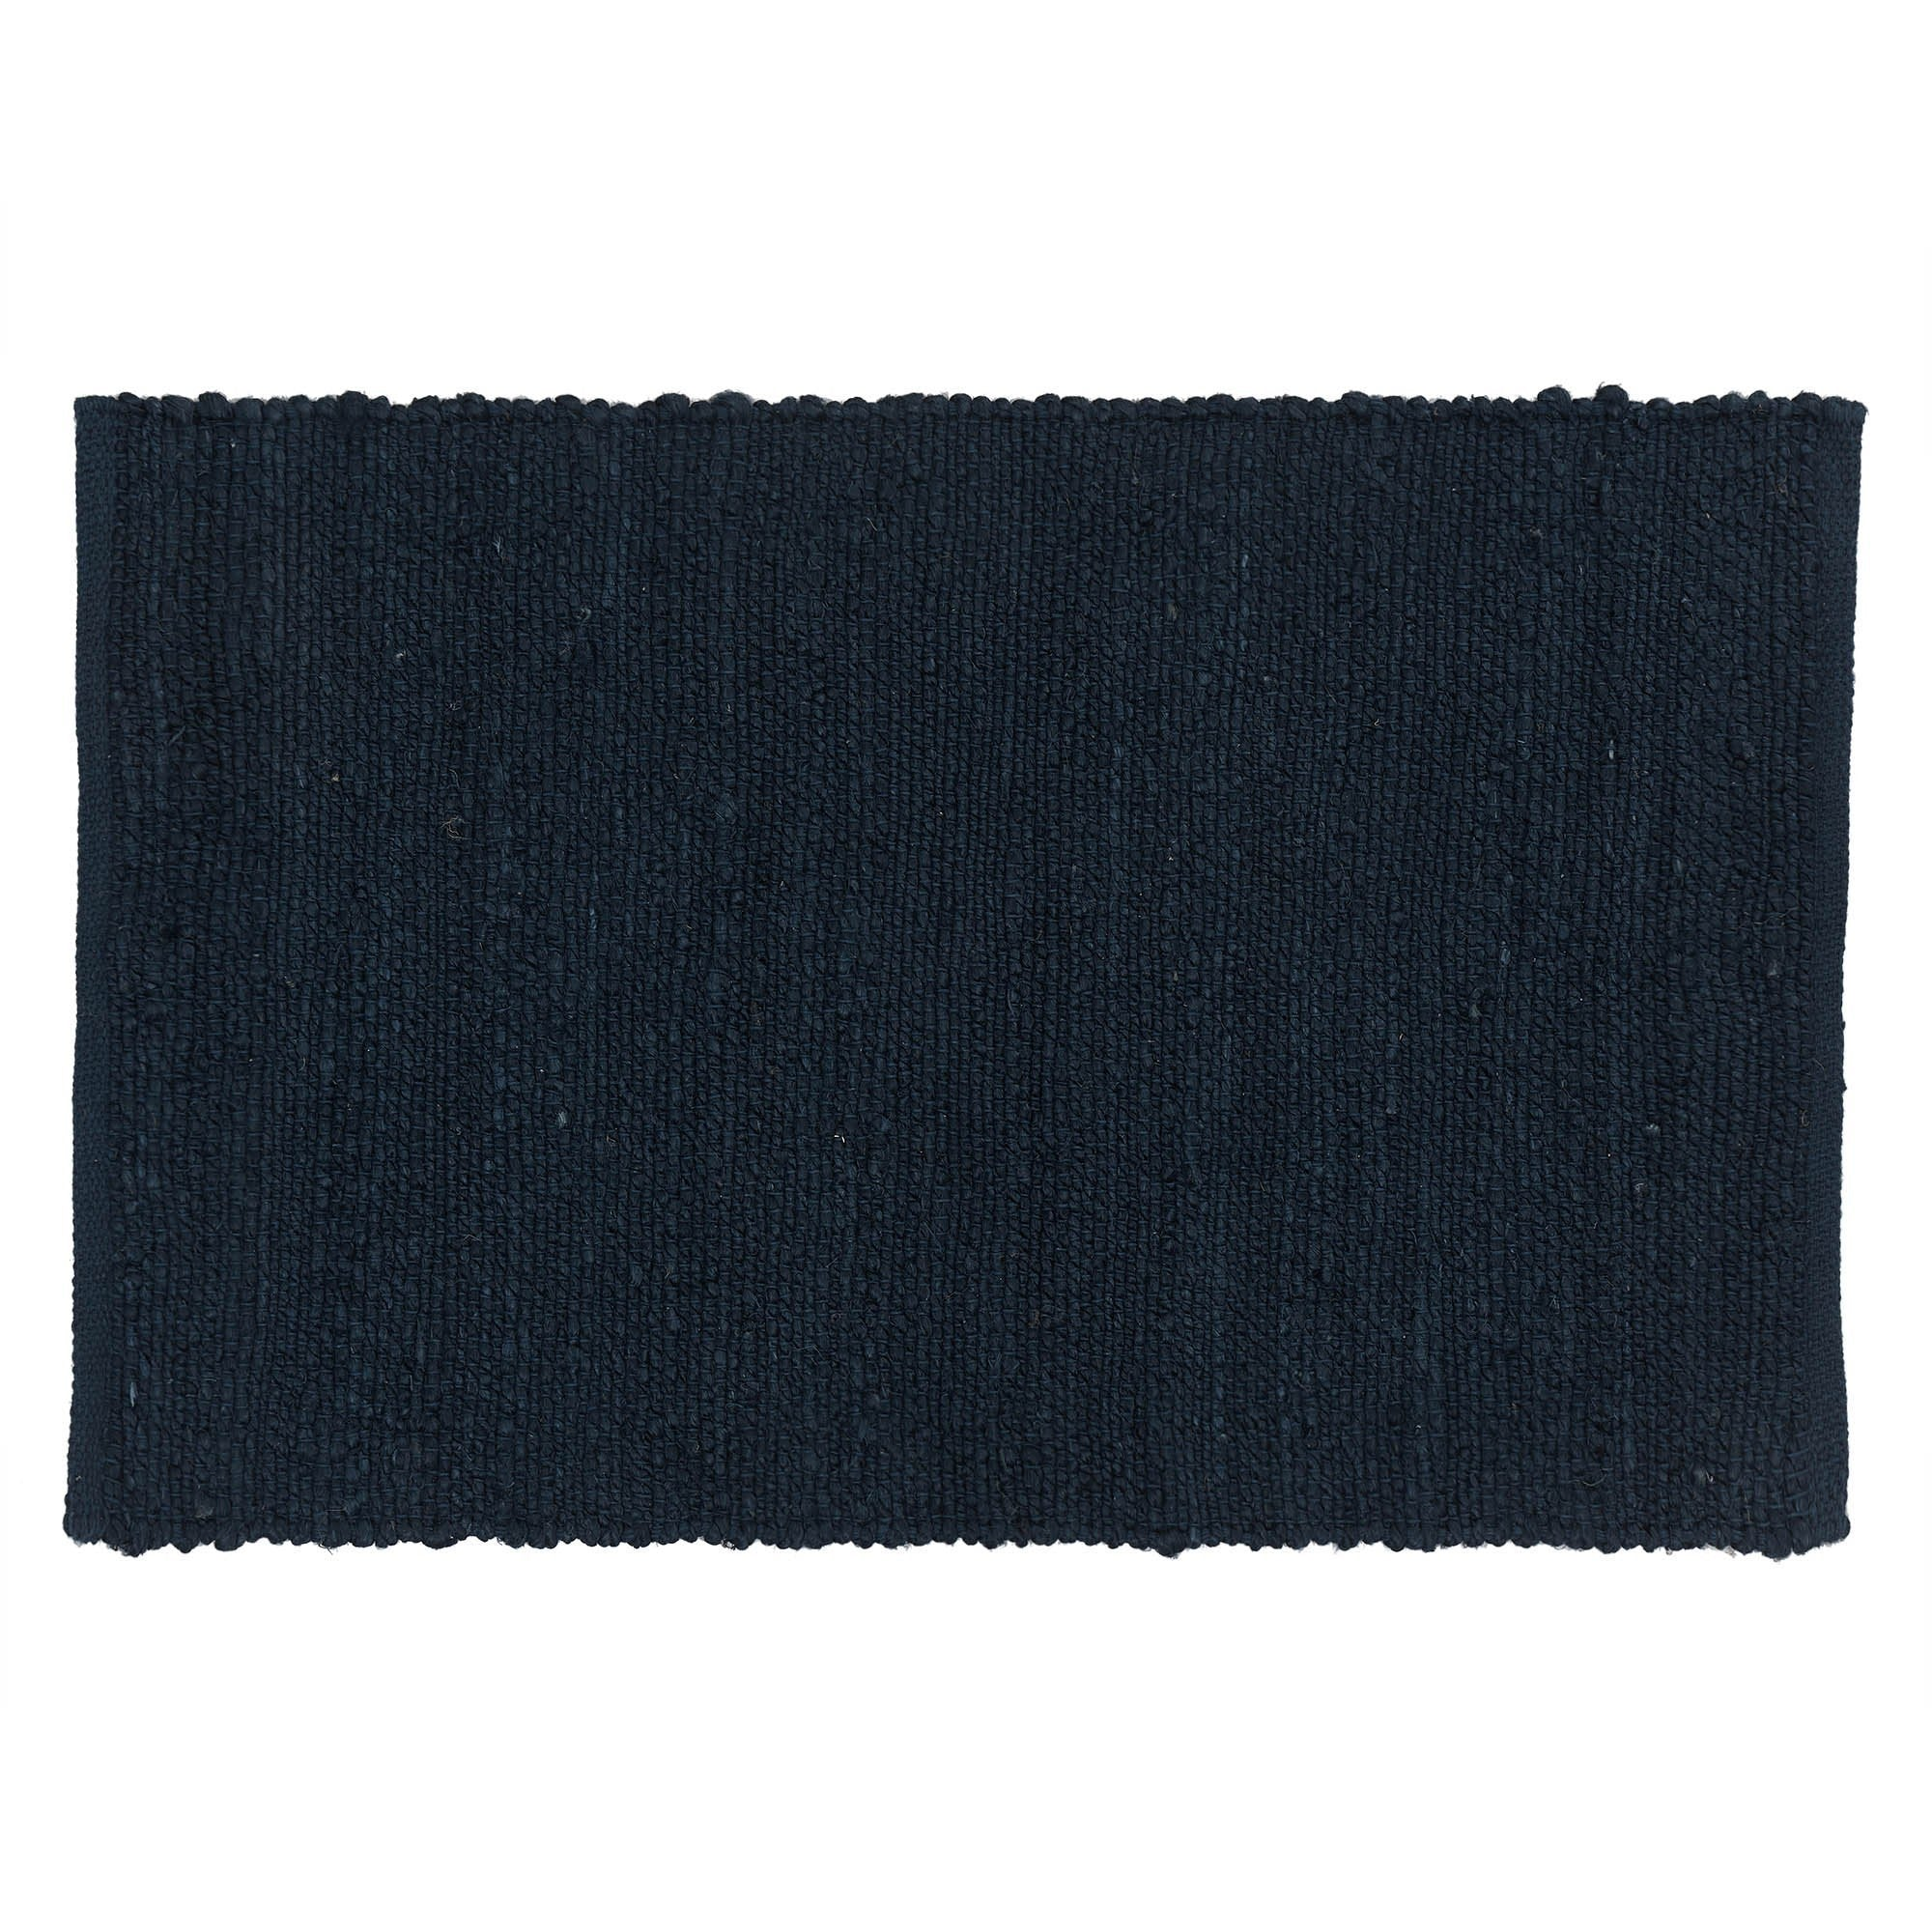 Gorbio doormat, blue, 90% jute & 10% cotton